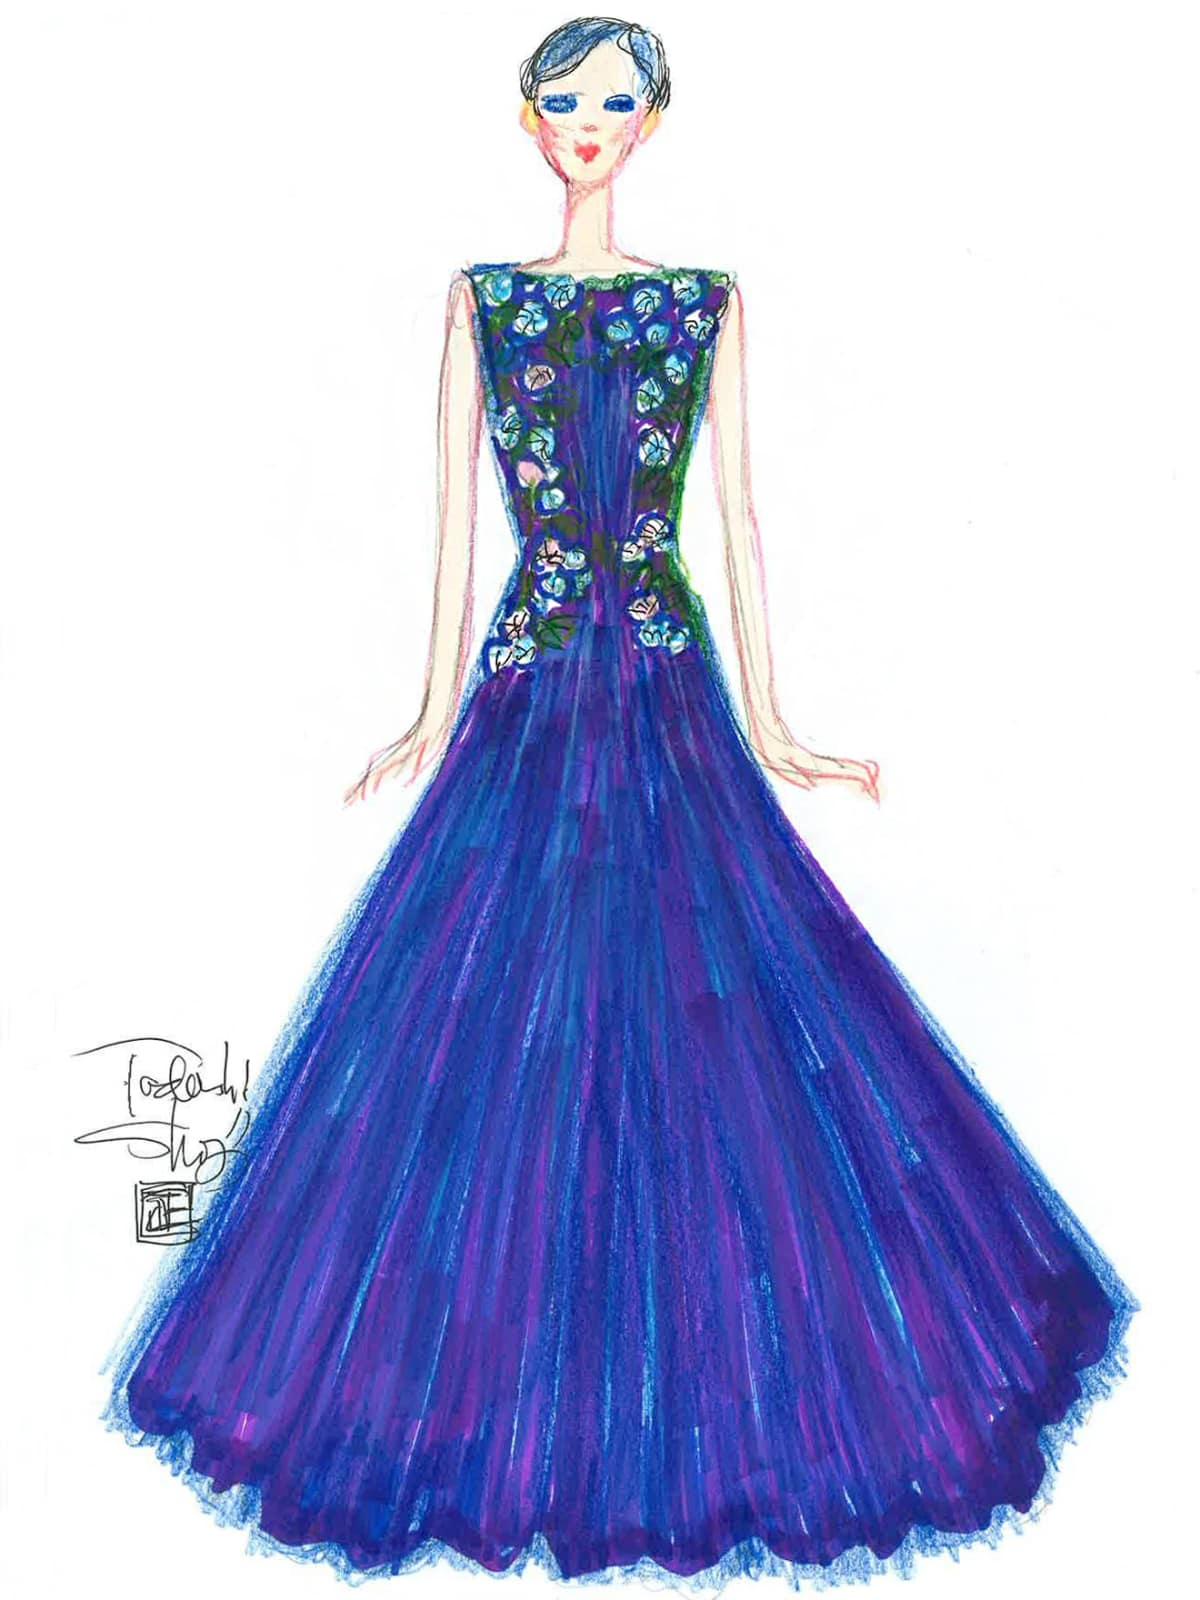 Tadashi Shoji inspiration sketch New York Fashion Week spring 2016